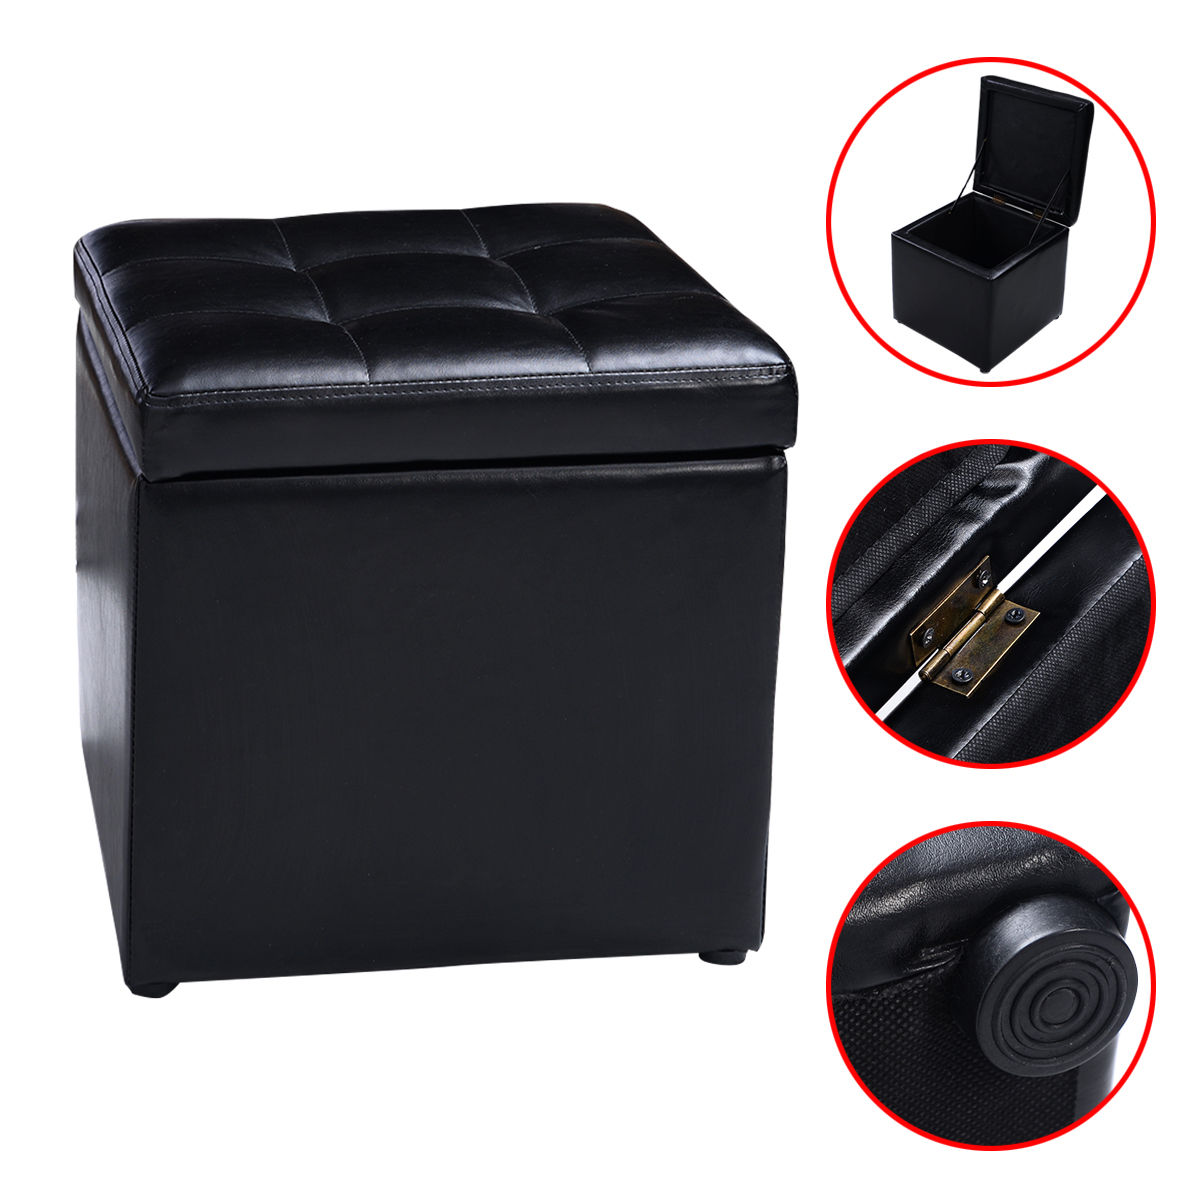 Costway 16''Cube Ottoman Pouffe Storage Box Lounge Seat Footstools with Hinge Top black by Costway